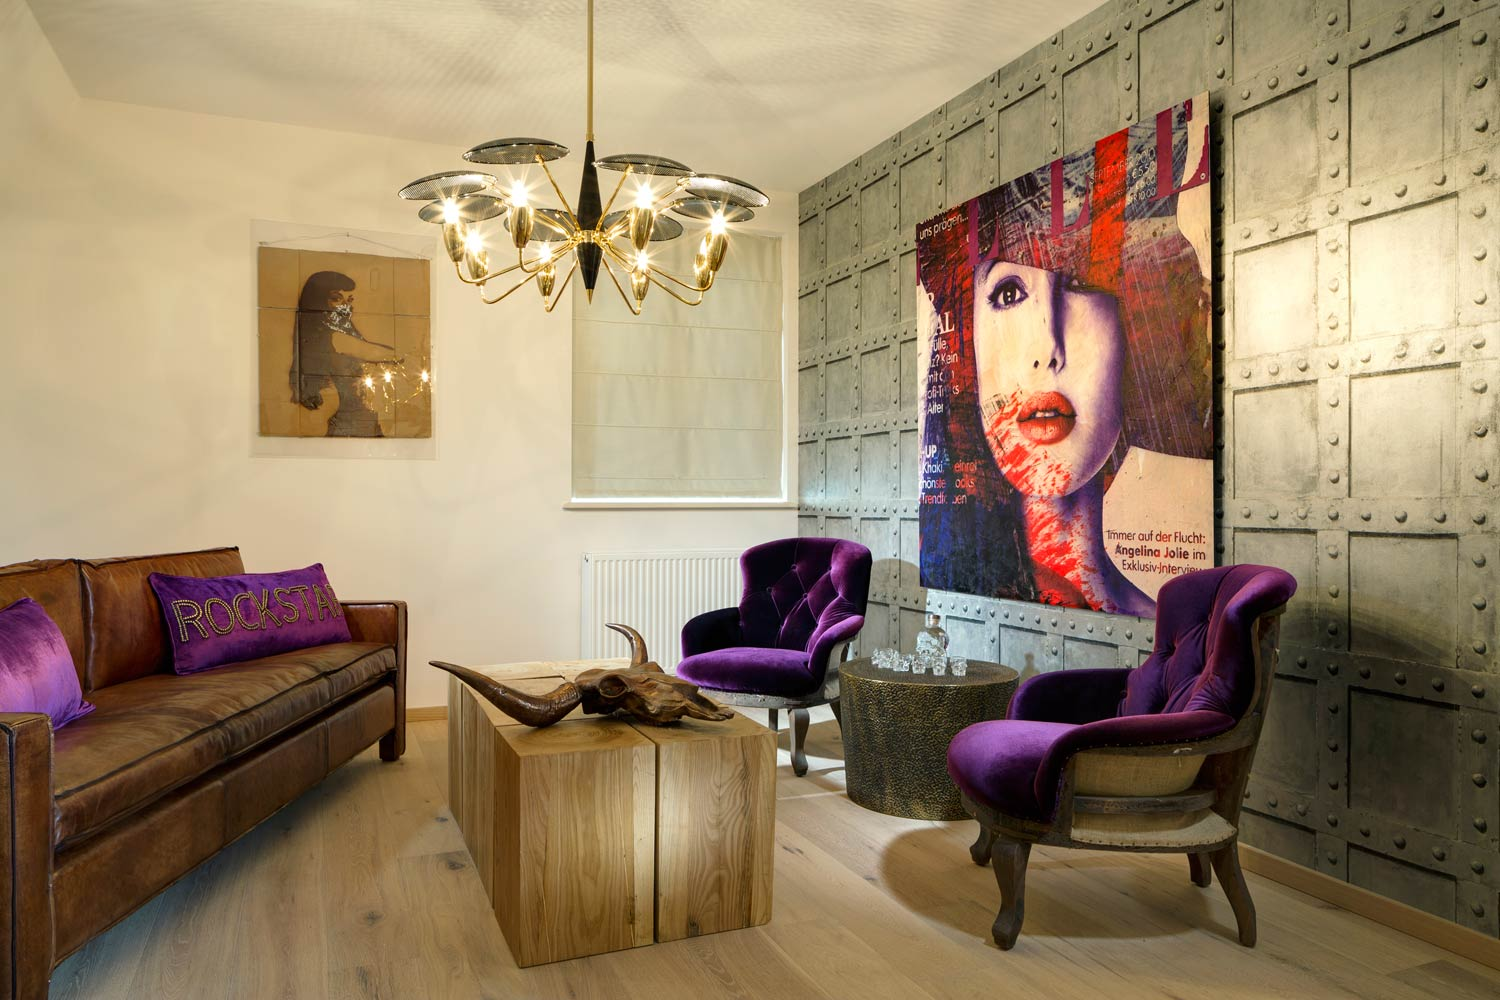 Marbella to belgium ambience home design completes - Ambience home design marbella ...